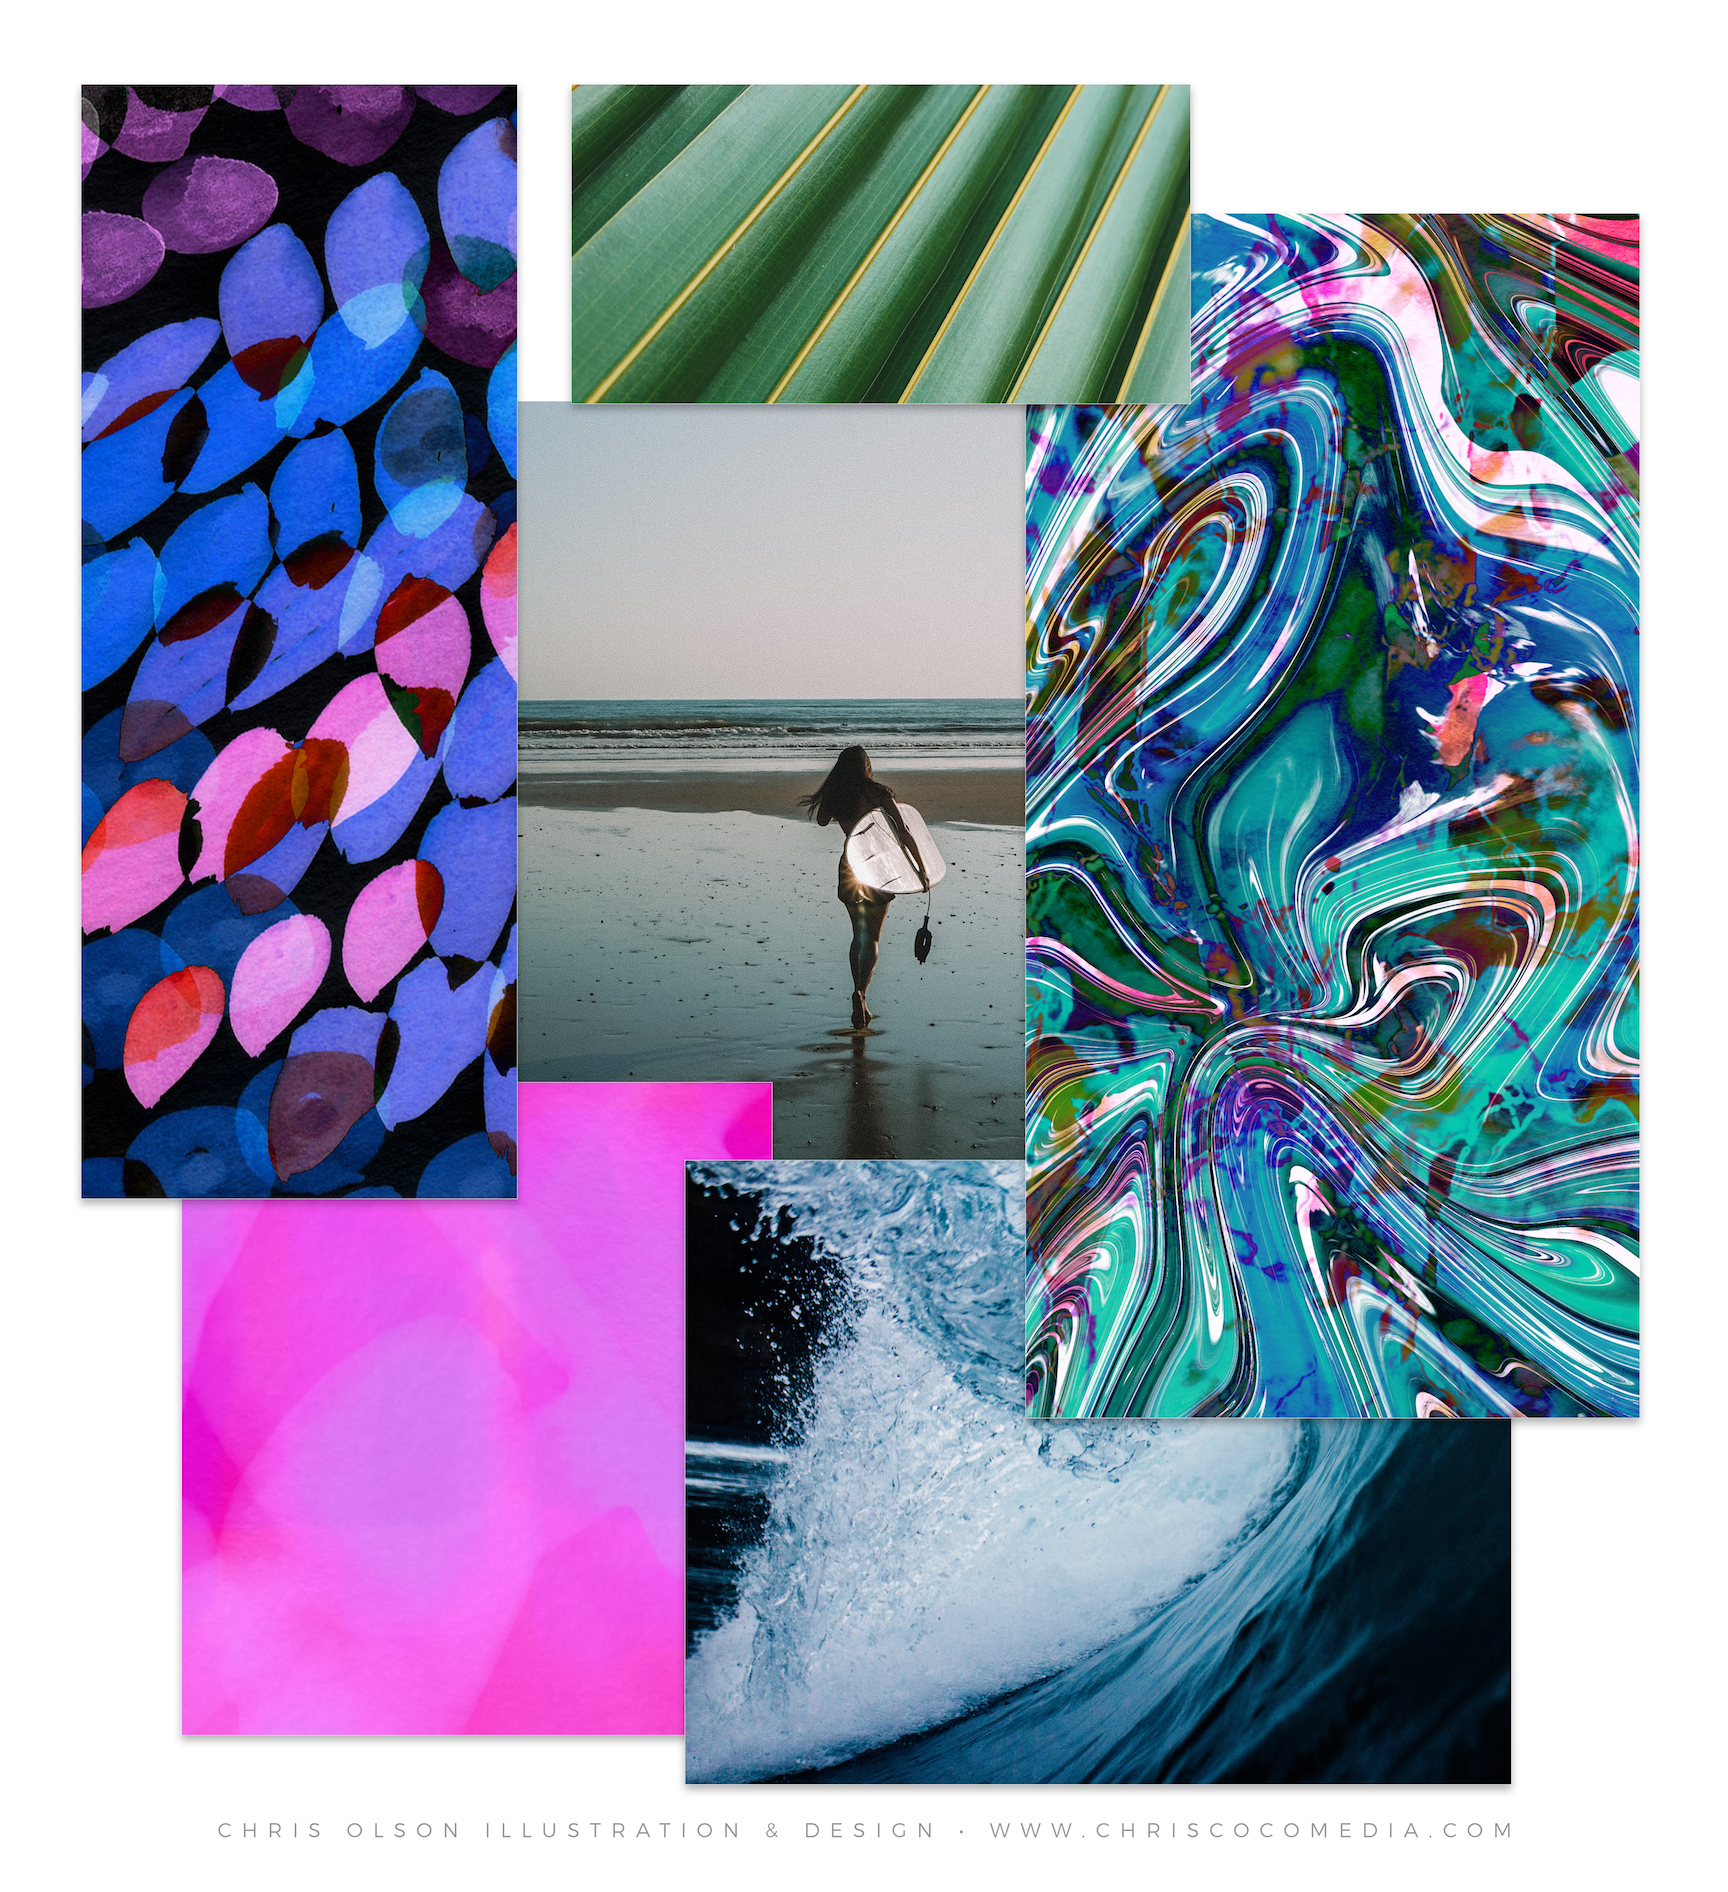 Escape to the water in this new mood board by Chris Olson with tropical-inspired color palette featuring psychedelic prints and a painterly vibe